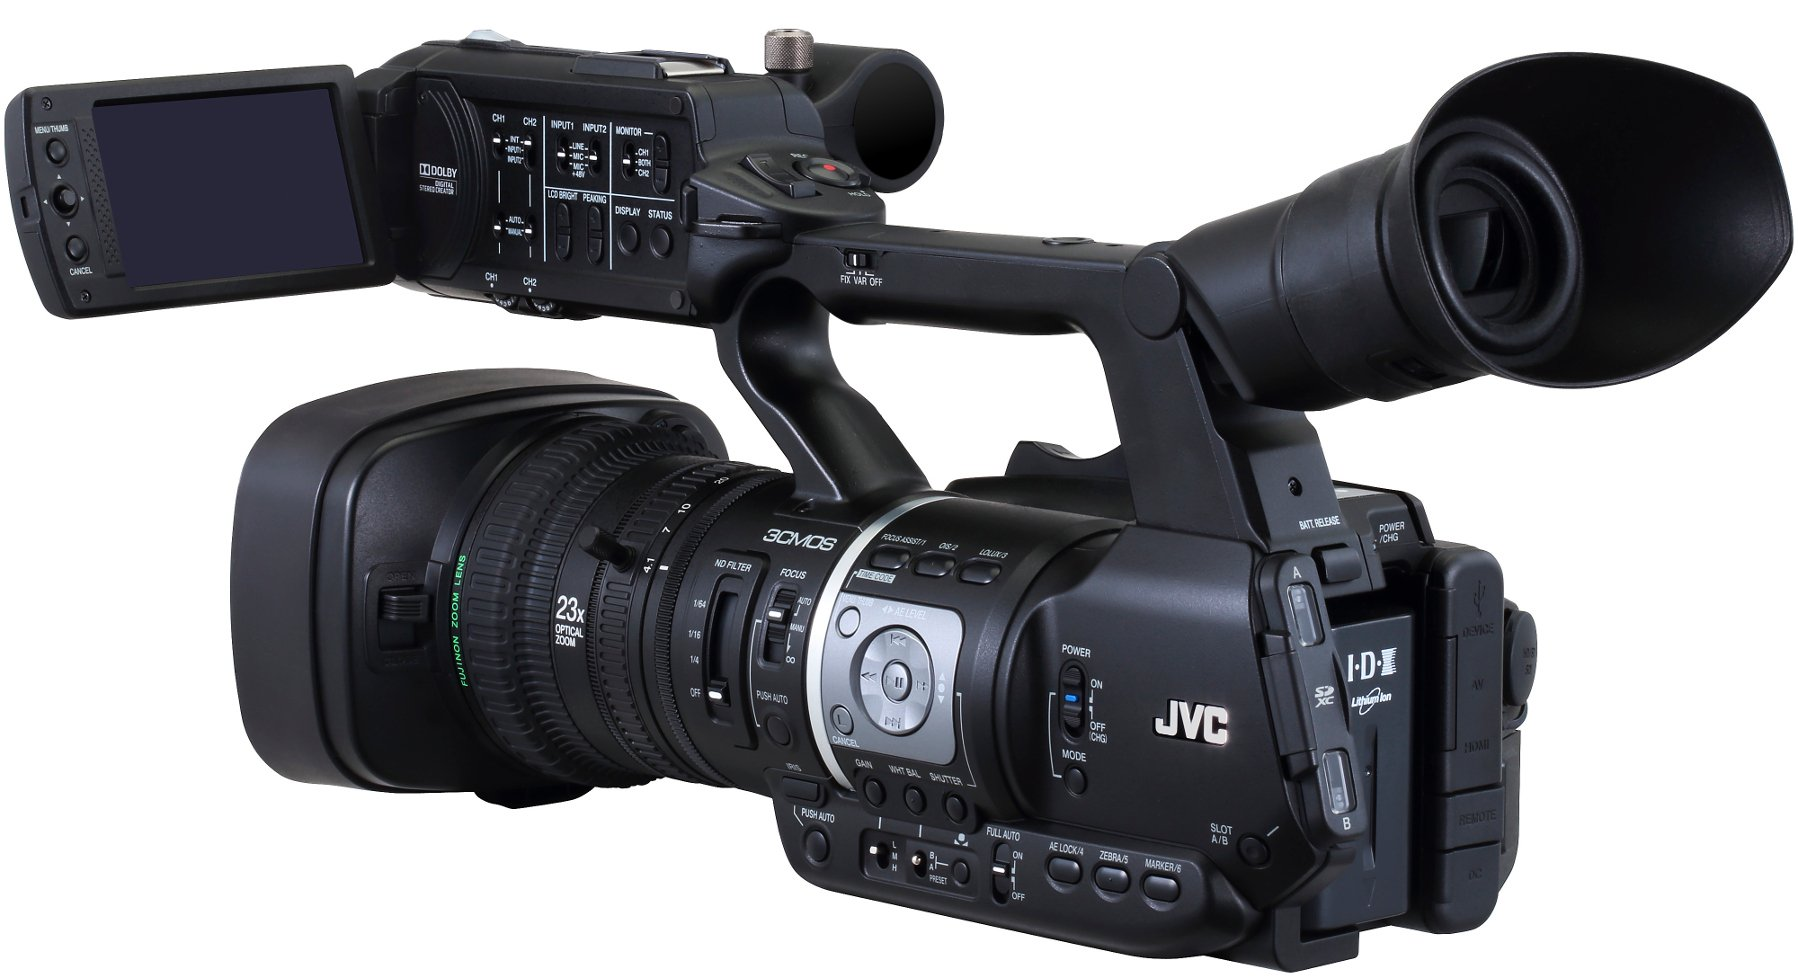 Mobile News Camera with 23x Lens